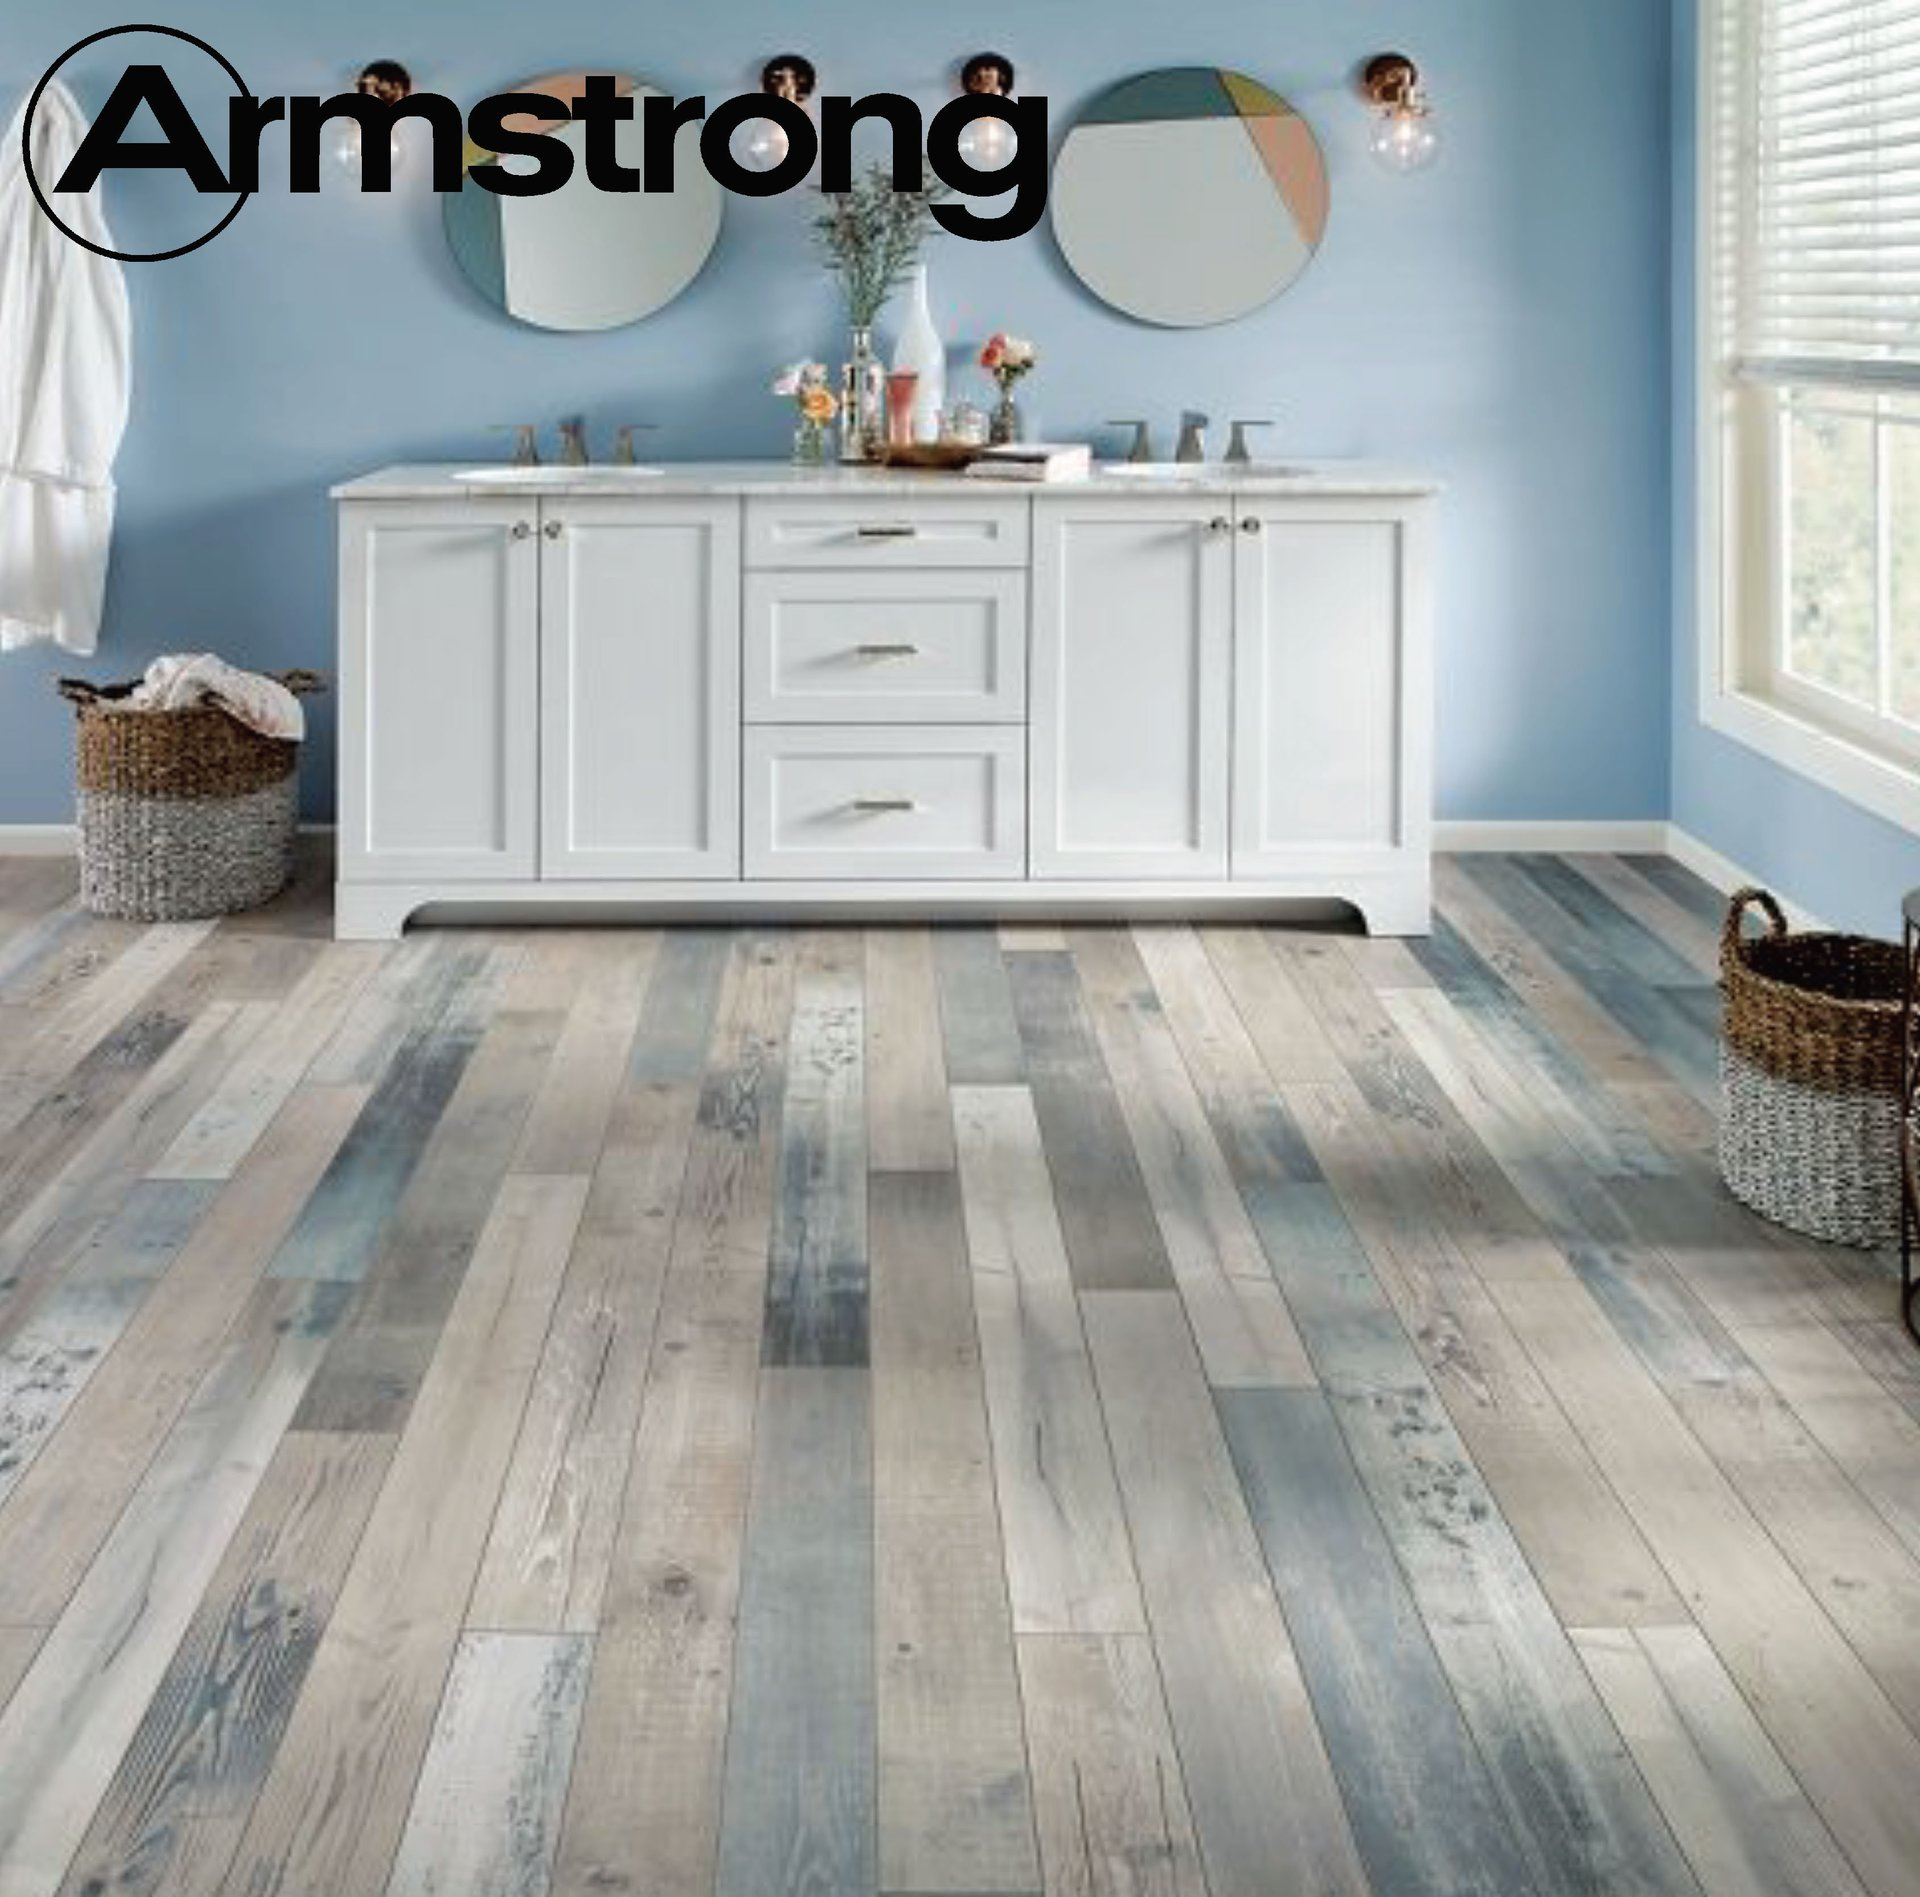 Armstrong luxury vinyl plank